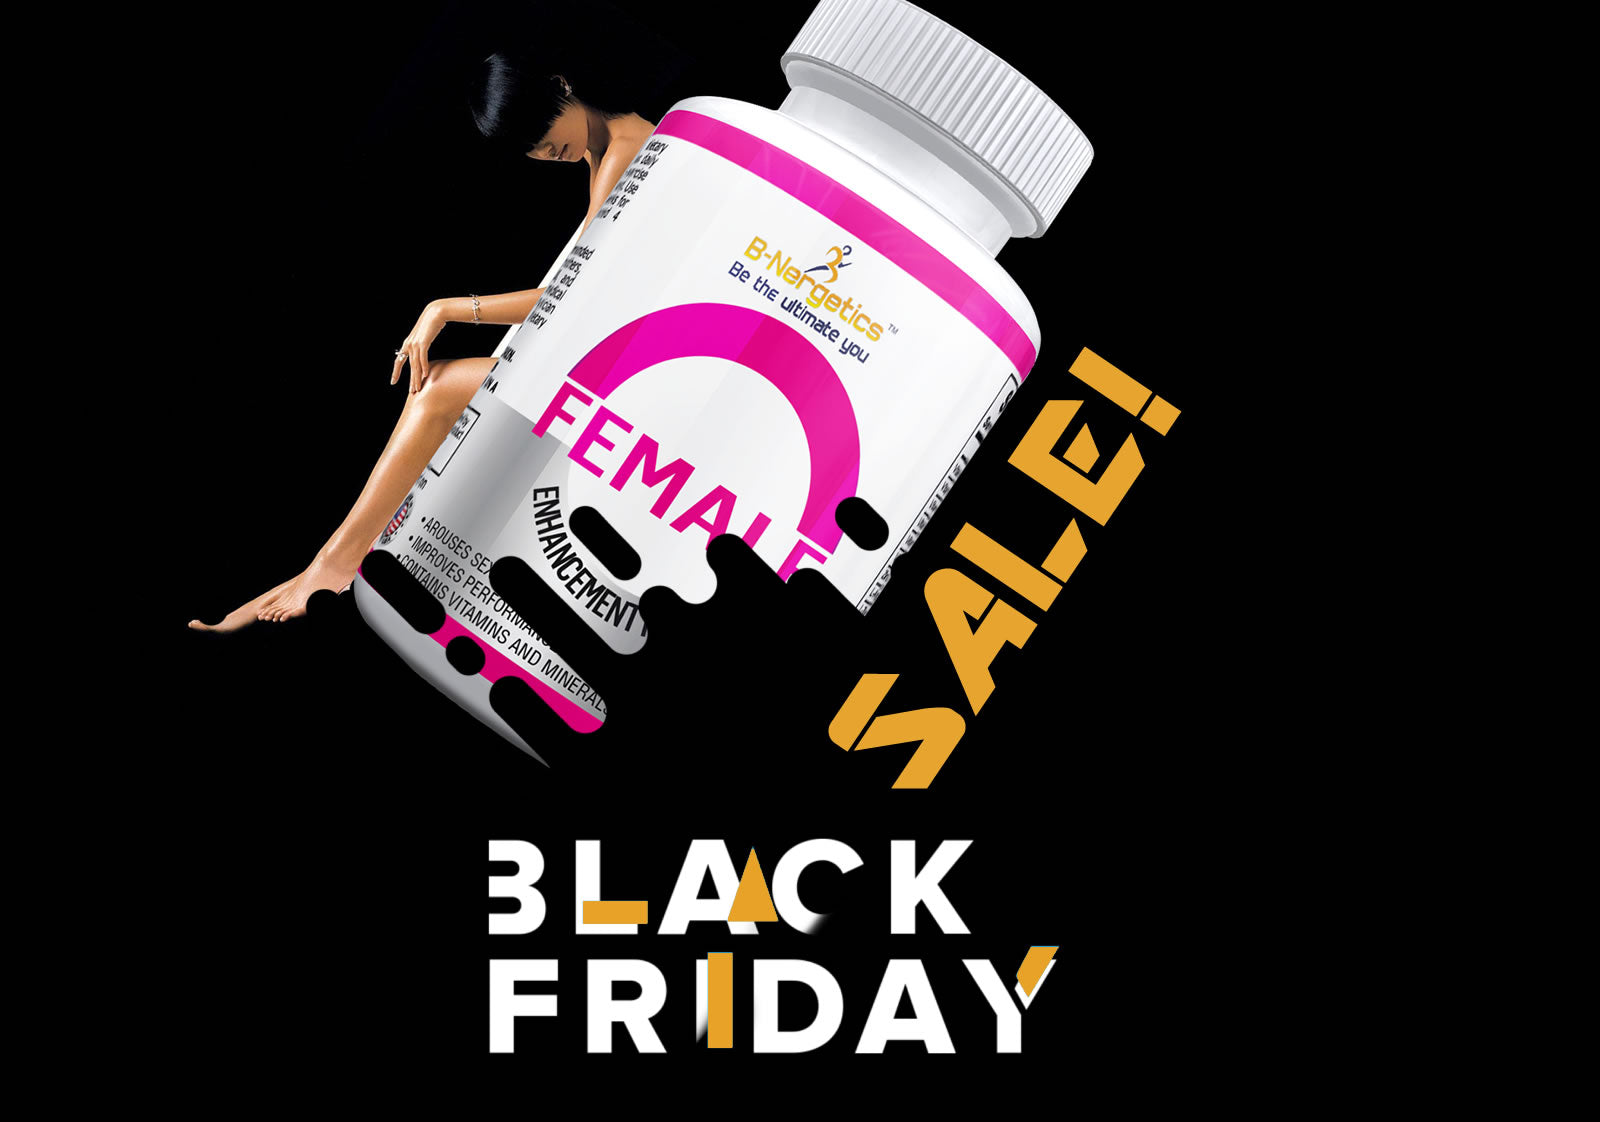 2 Days To Black Friday Supplements, keep an eye on our deals